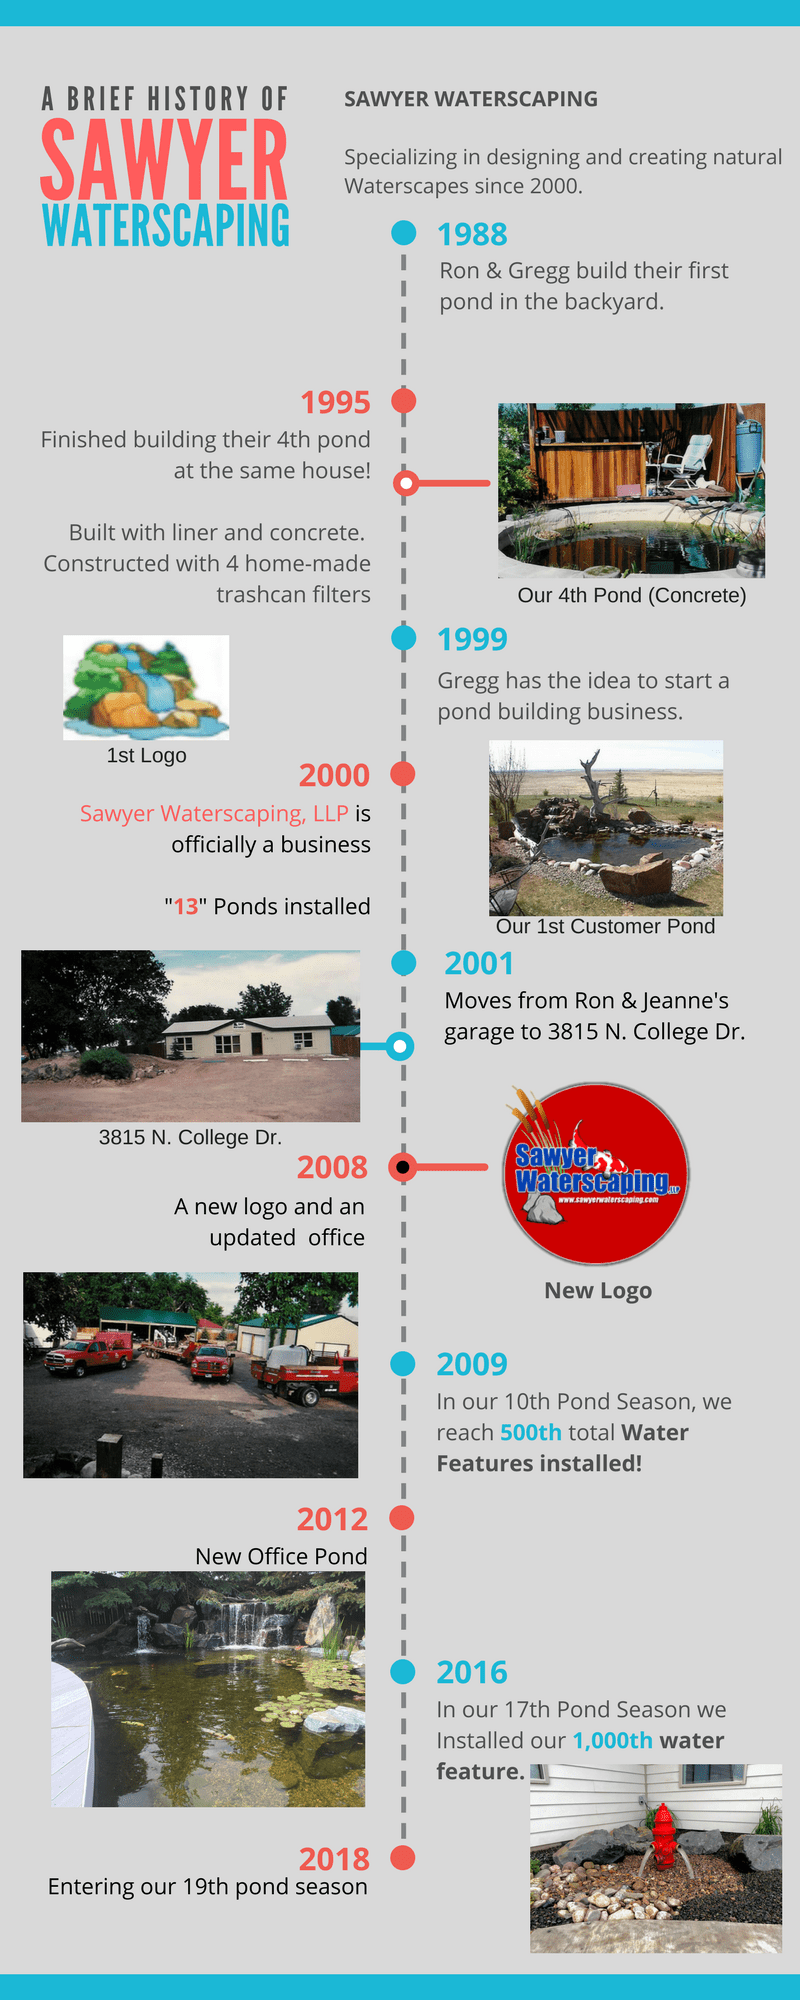 History of Sawyer Waterscaping